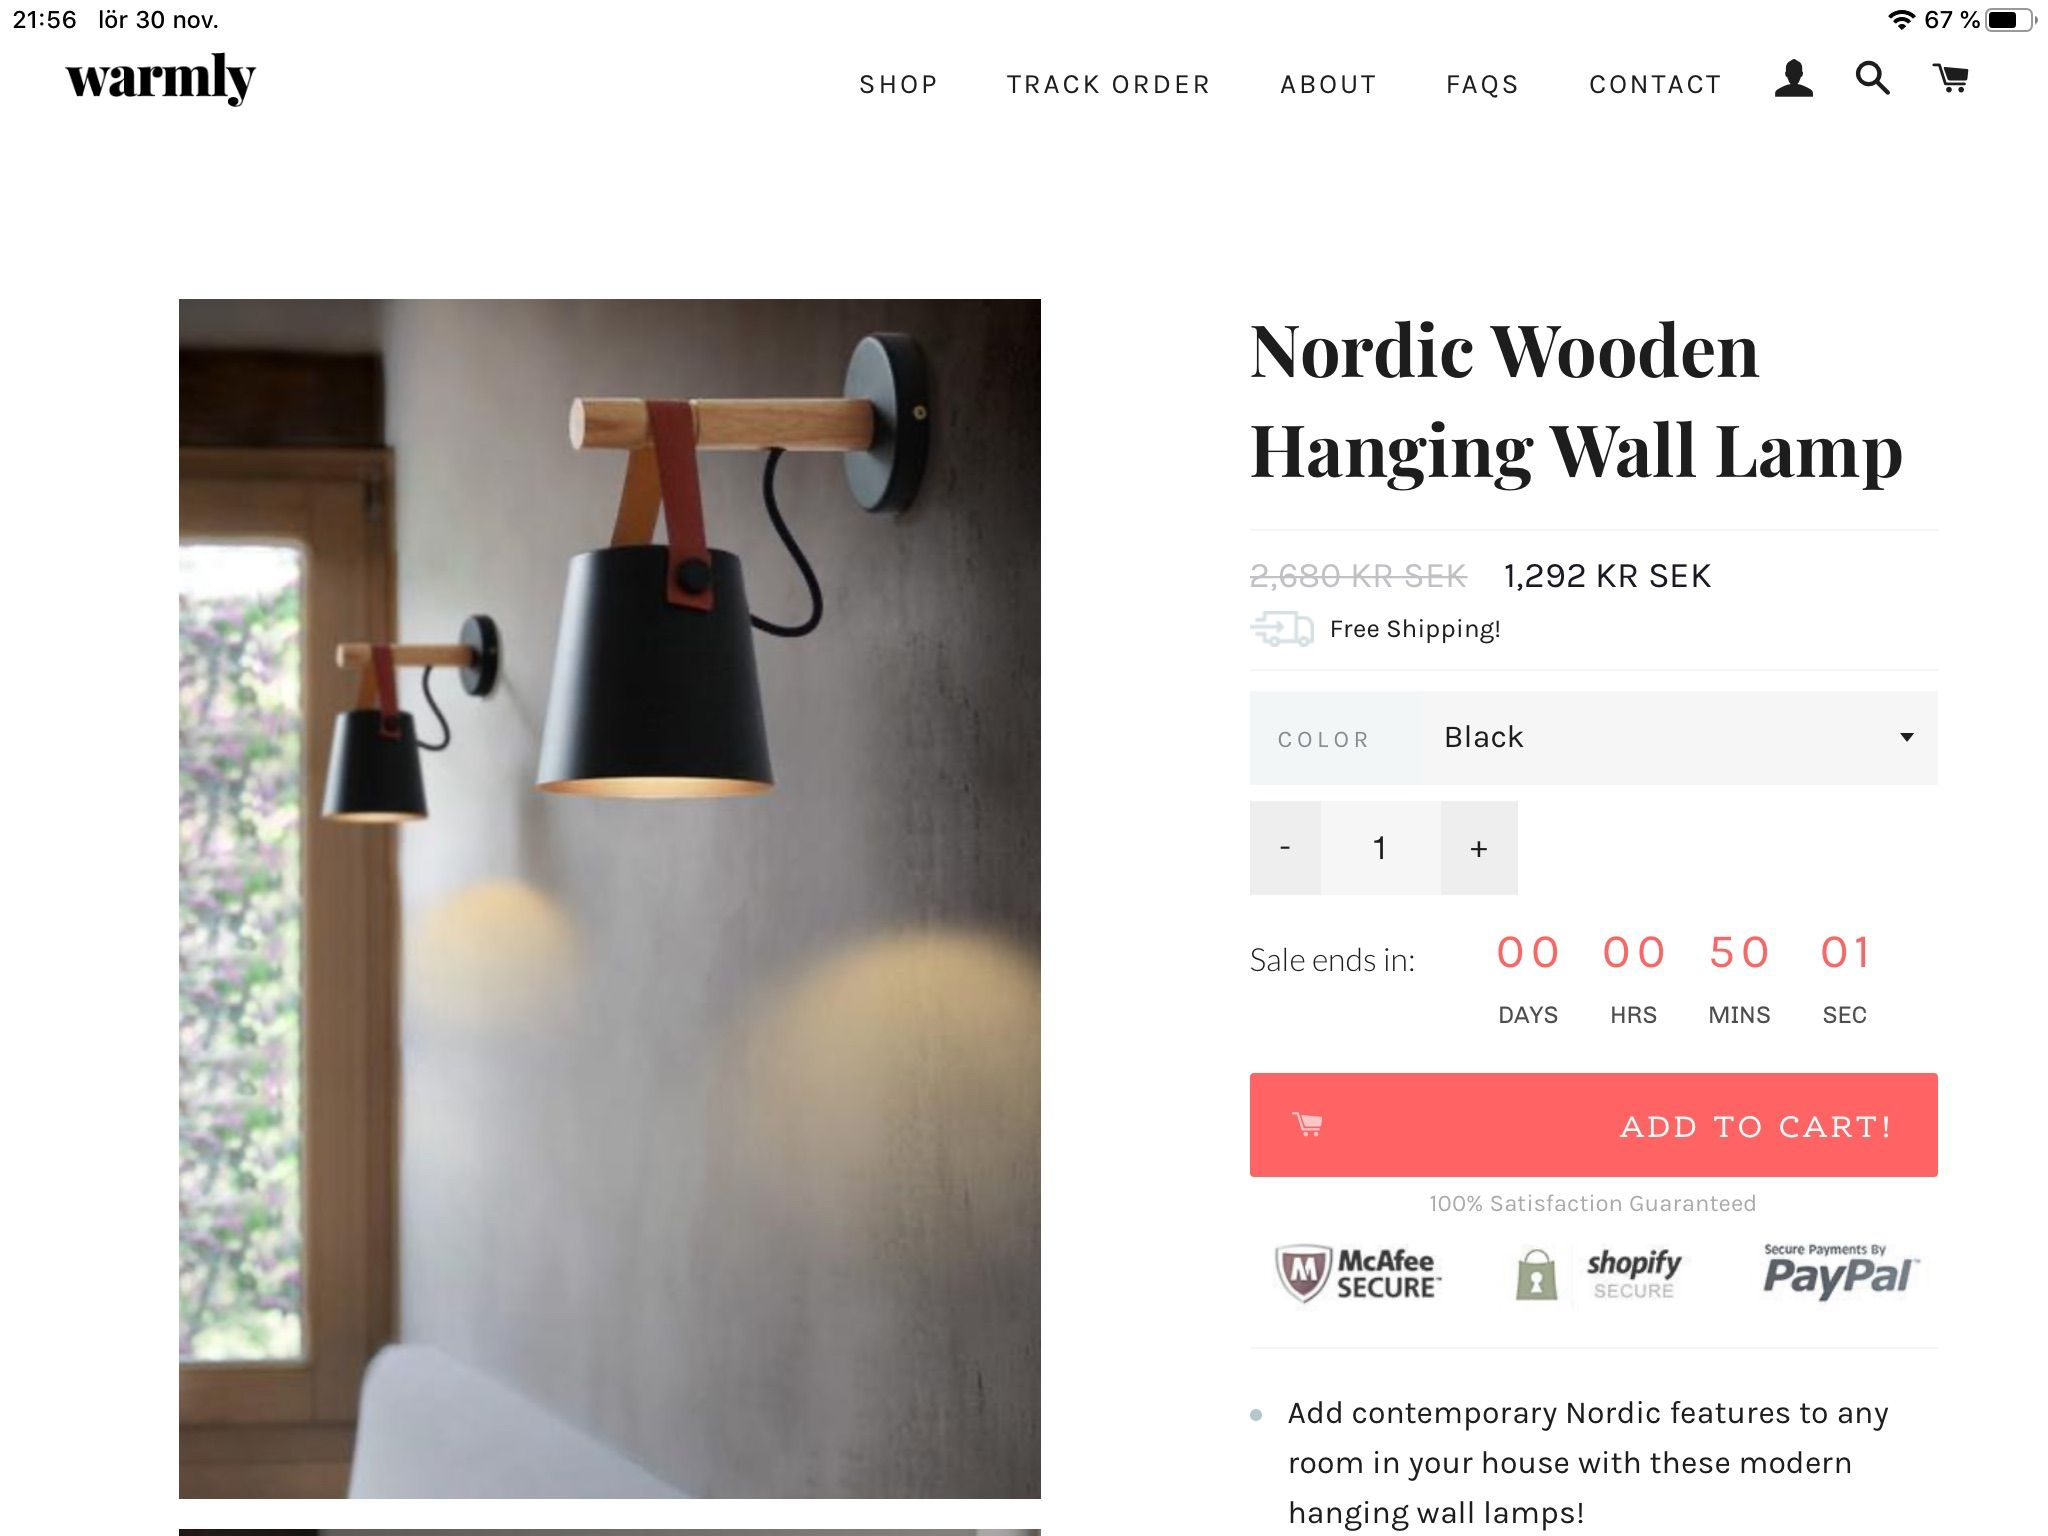 Pin By Boel Bengtsson On Lampor Wooden Wall Hangings Wooden Walls Hanging Lamp